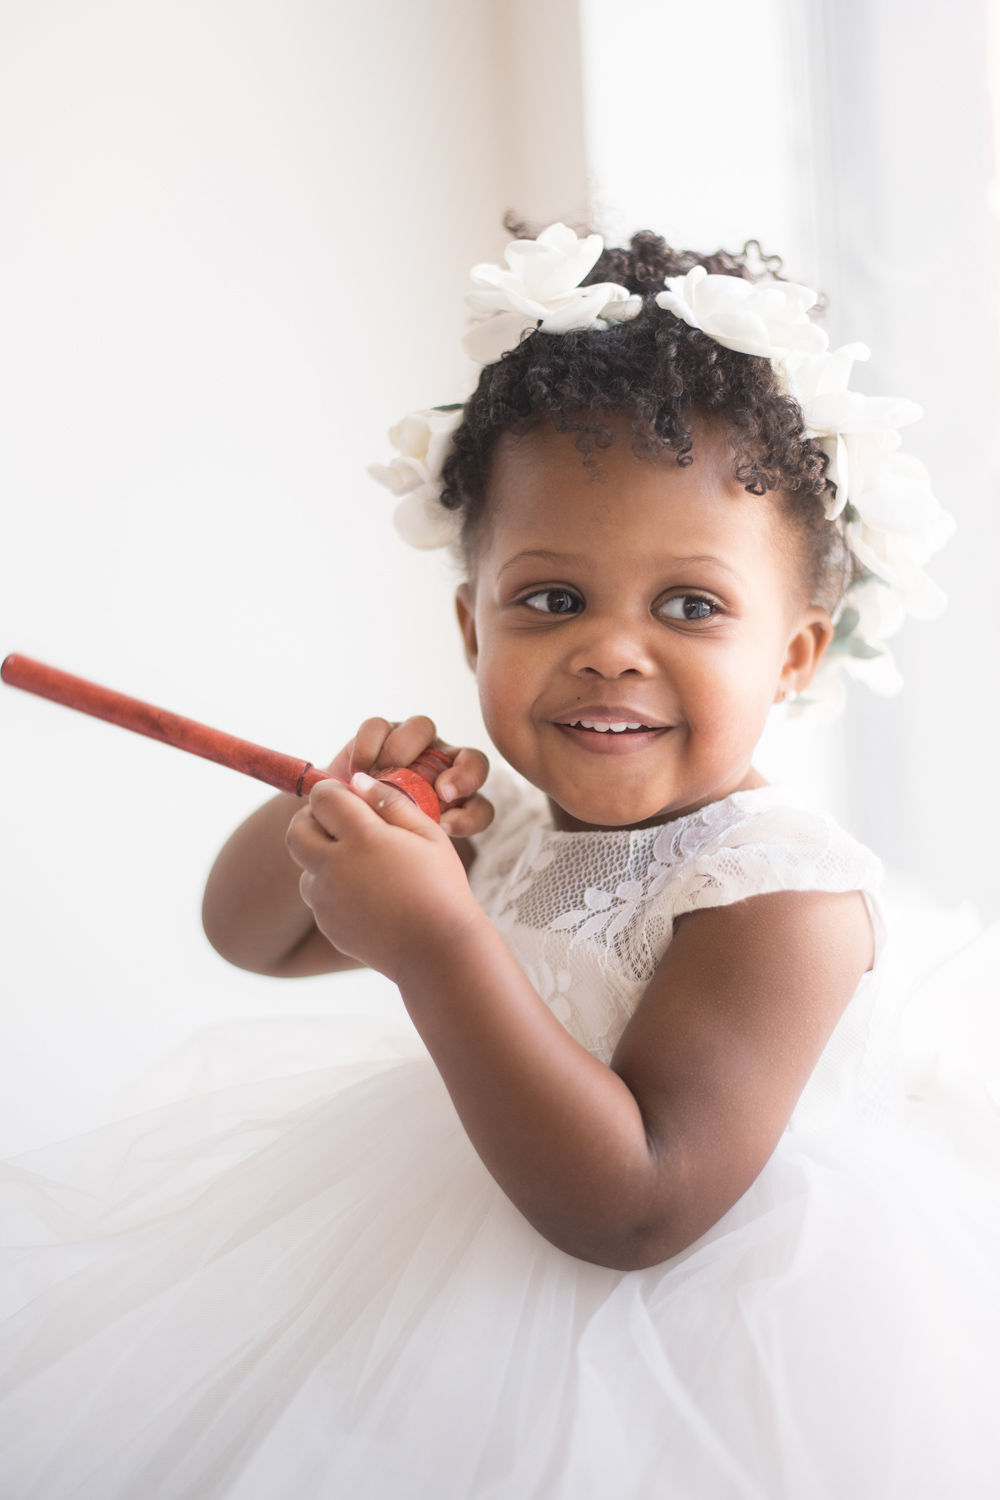 Two-year-old toddler plays with a miniature gavel and smiles.